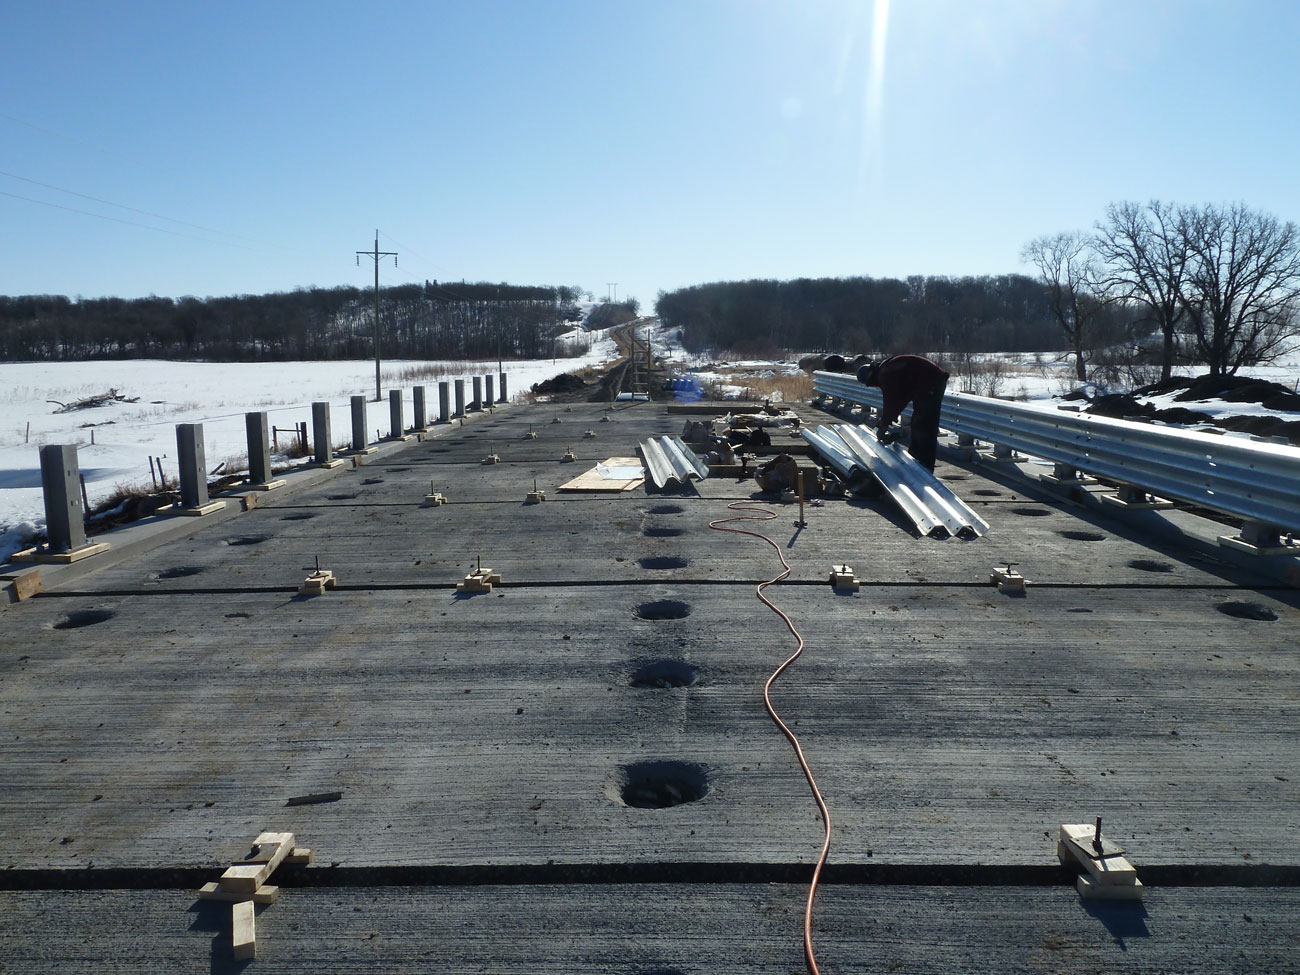 Precast concrete deck panels for municipal bridge construction - Rapid-Span